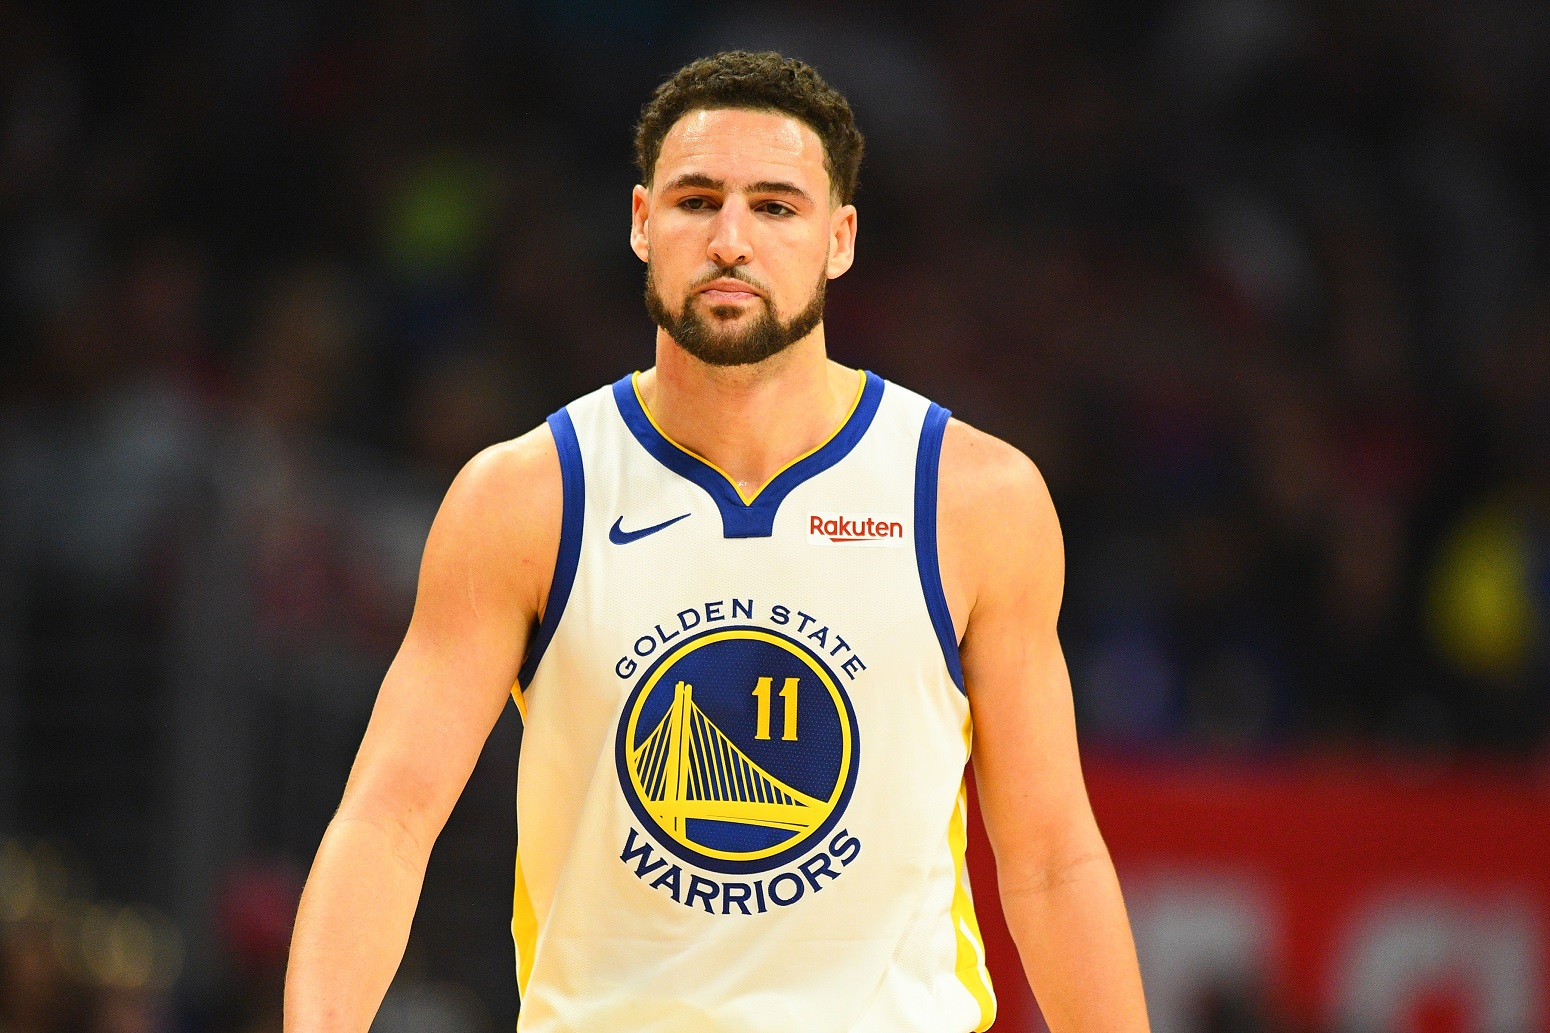 Golden State Warriors Klay Thompson NBA title hopes crushed